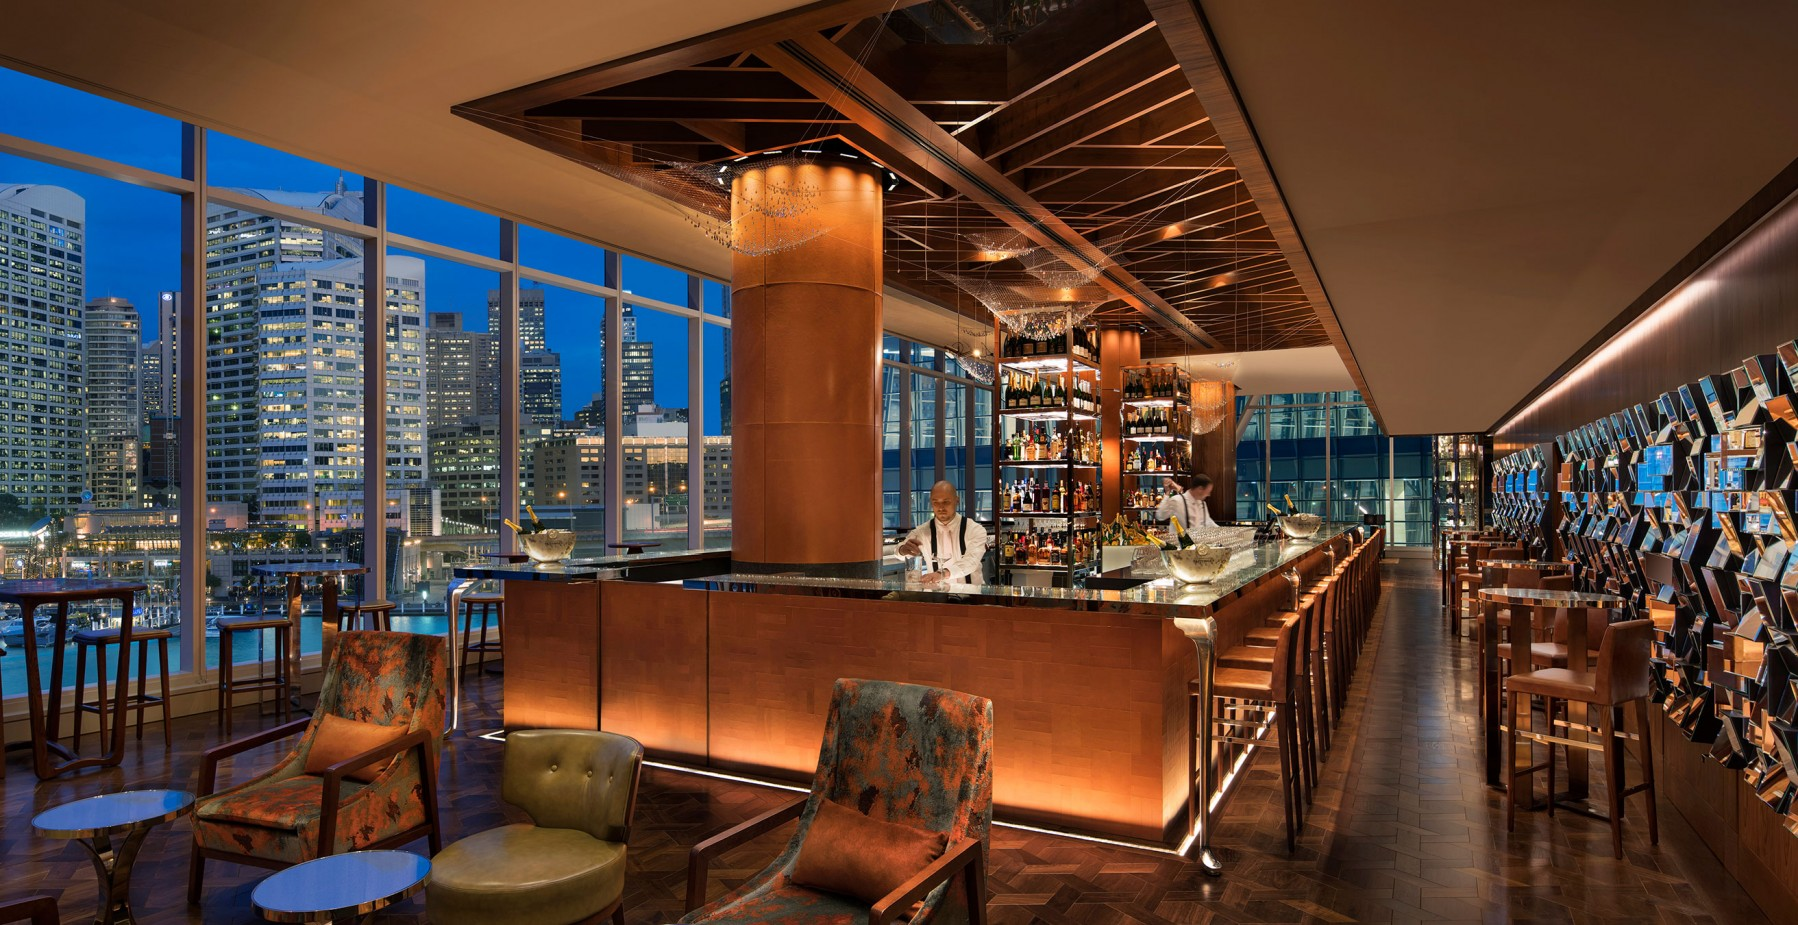 Sofitel Sydney Darling Harbour Champagne Bar